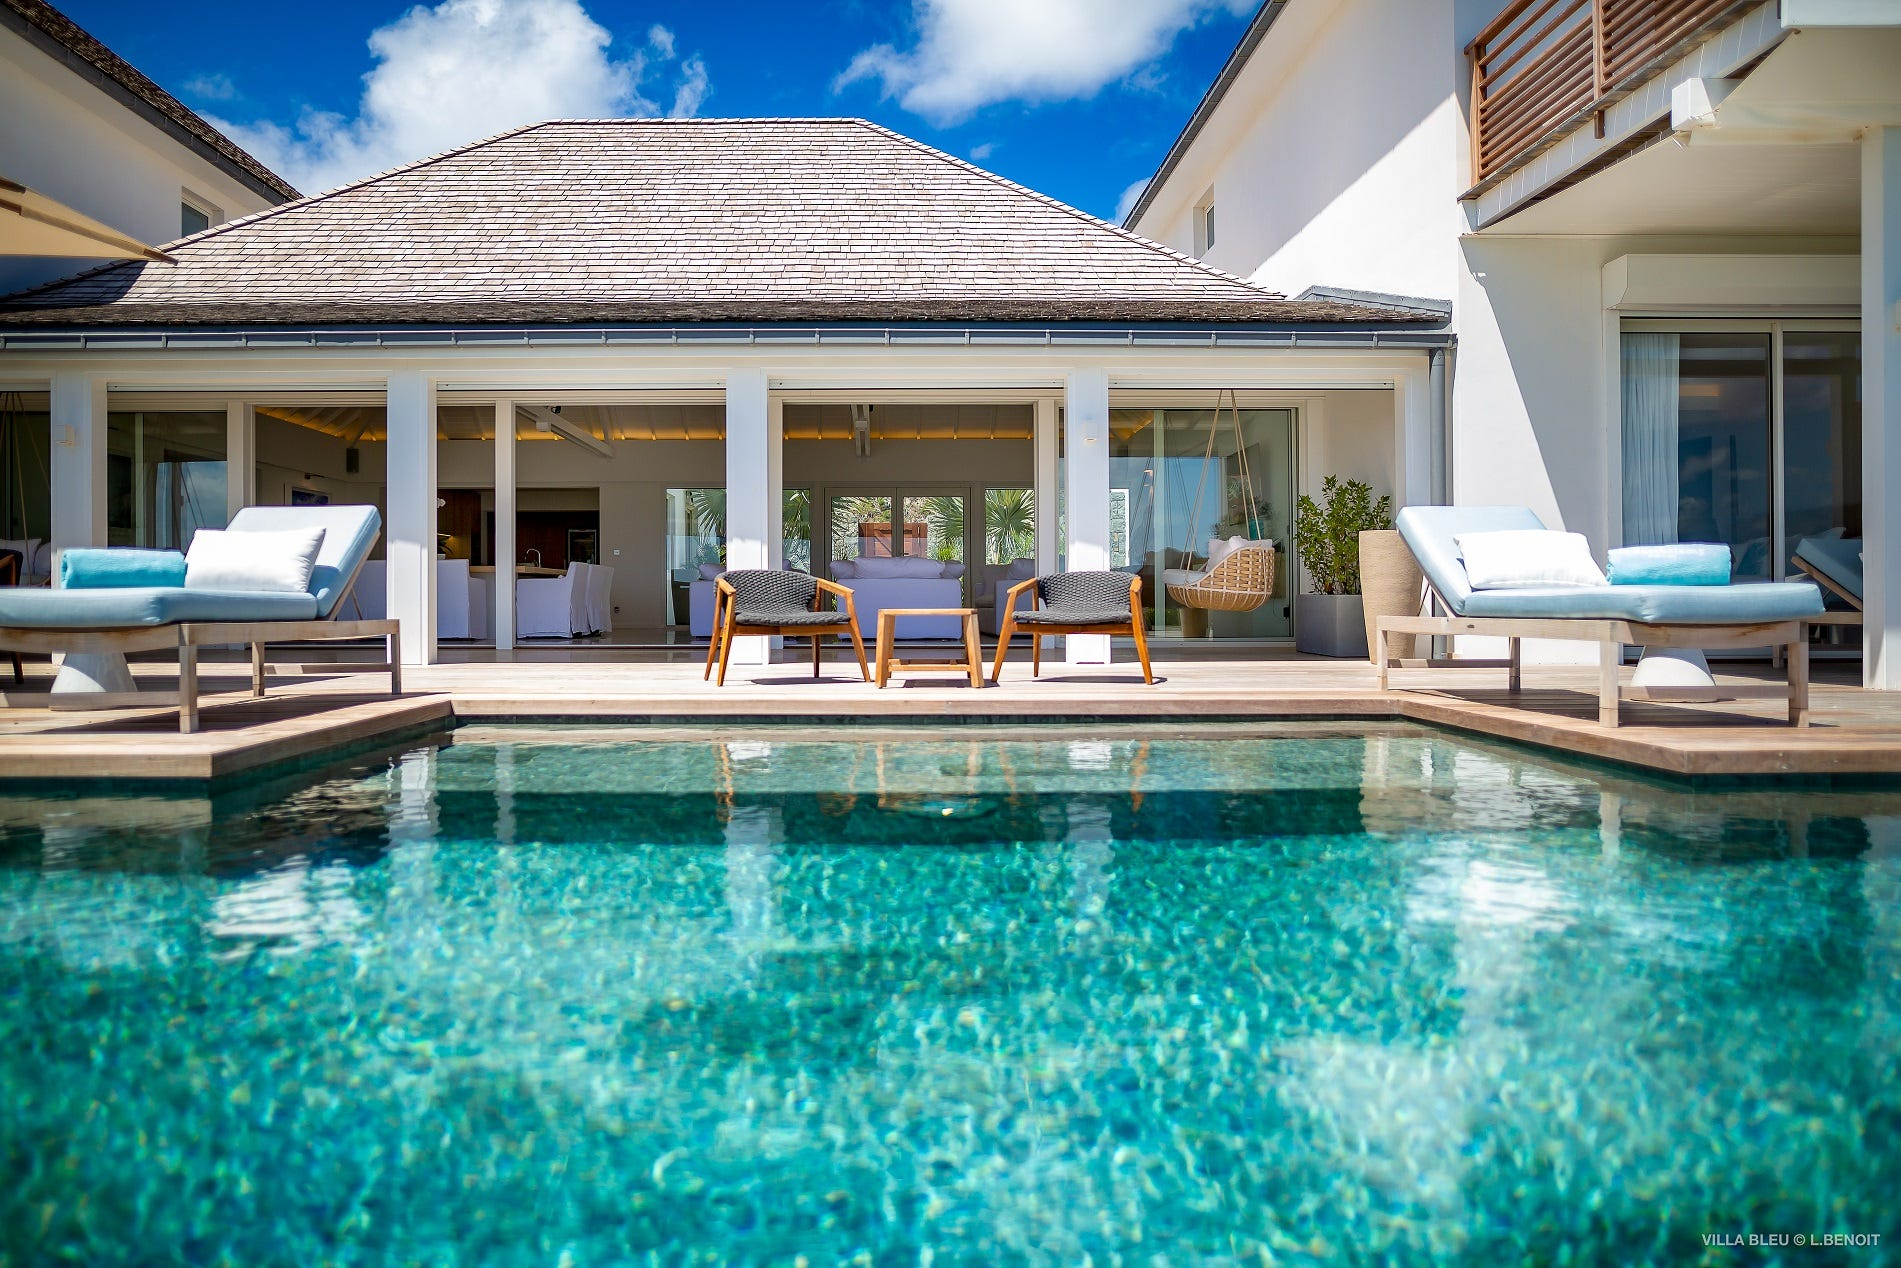 Hotels in the USA and Caribbean get major renovations | USA Today